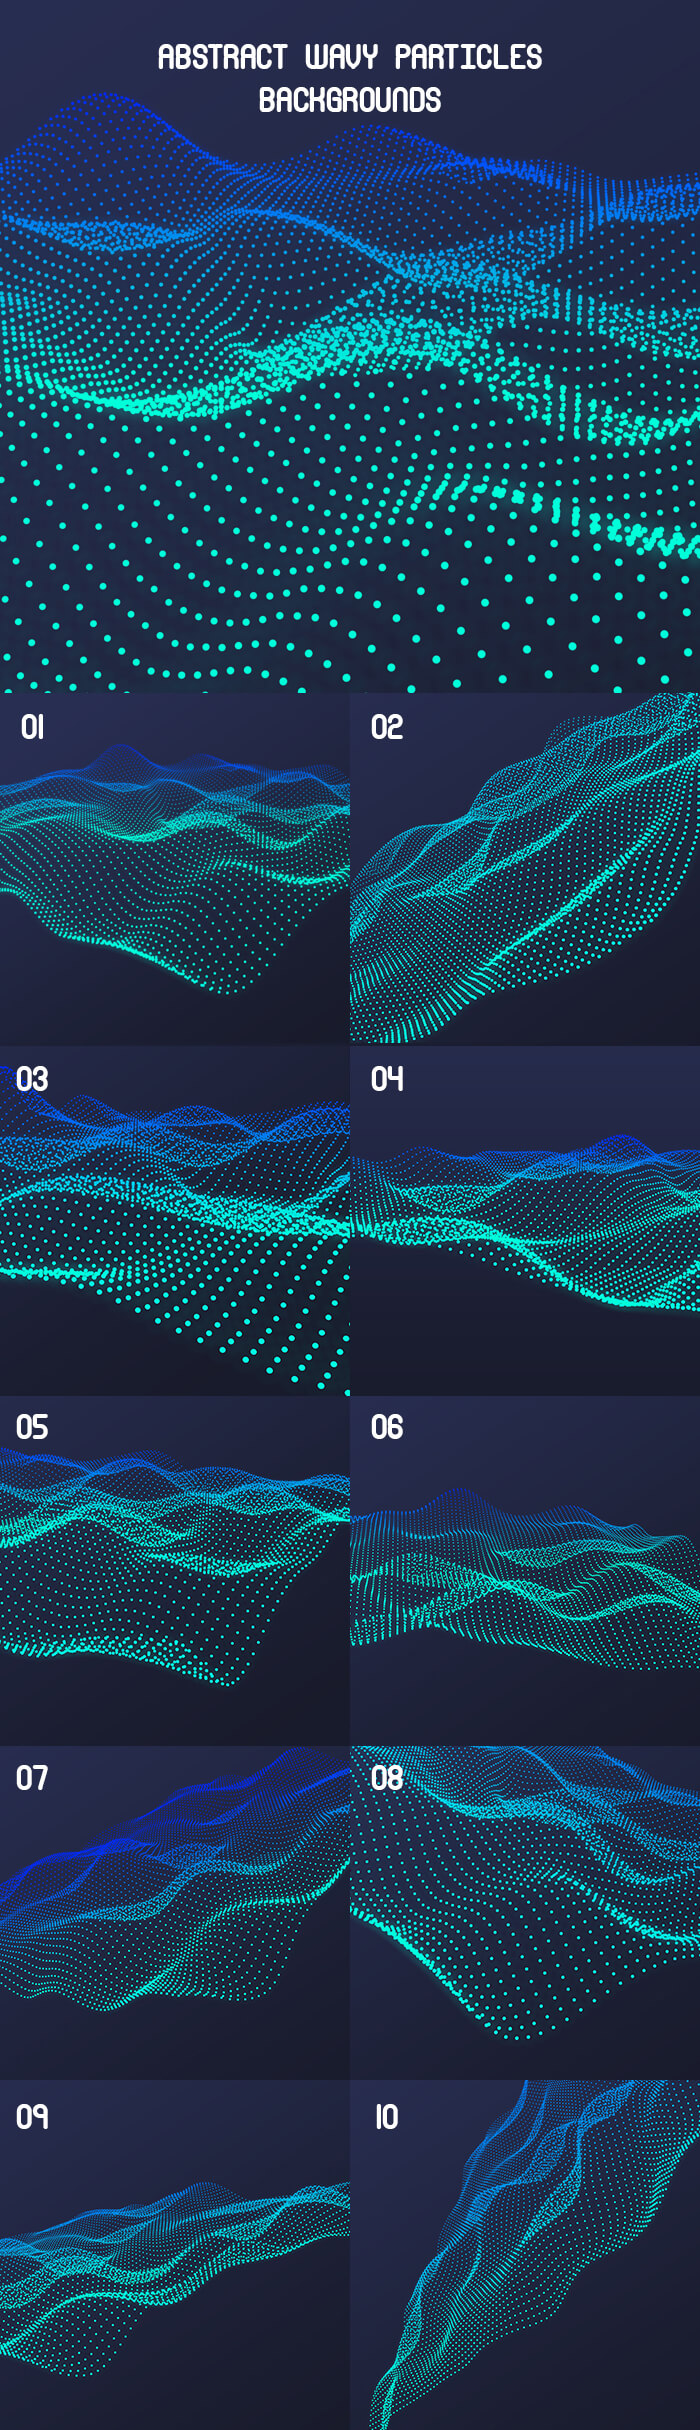 Free Abstract Wavy Particles Backgrounds Mockup PSD Template1